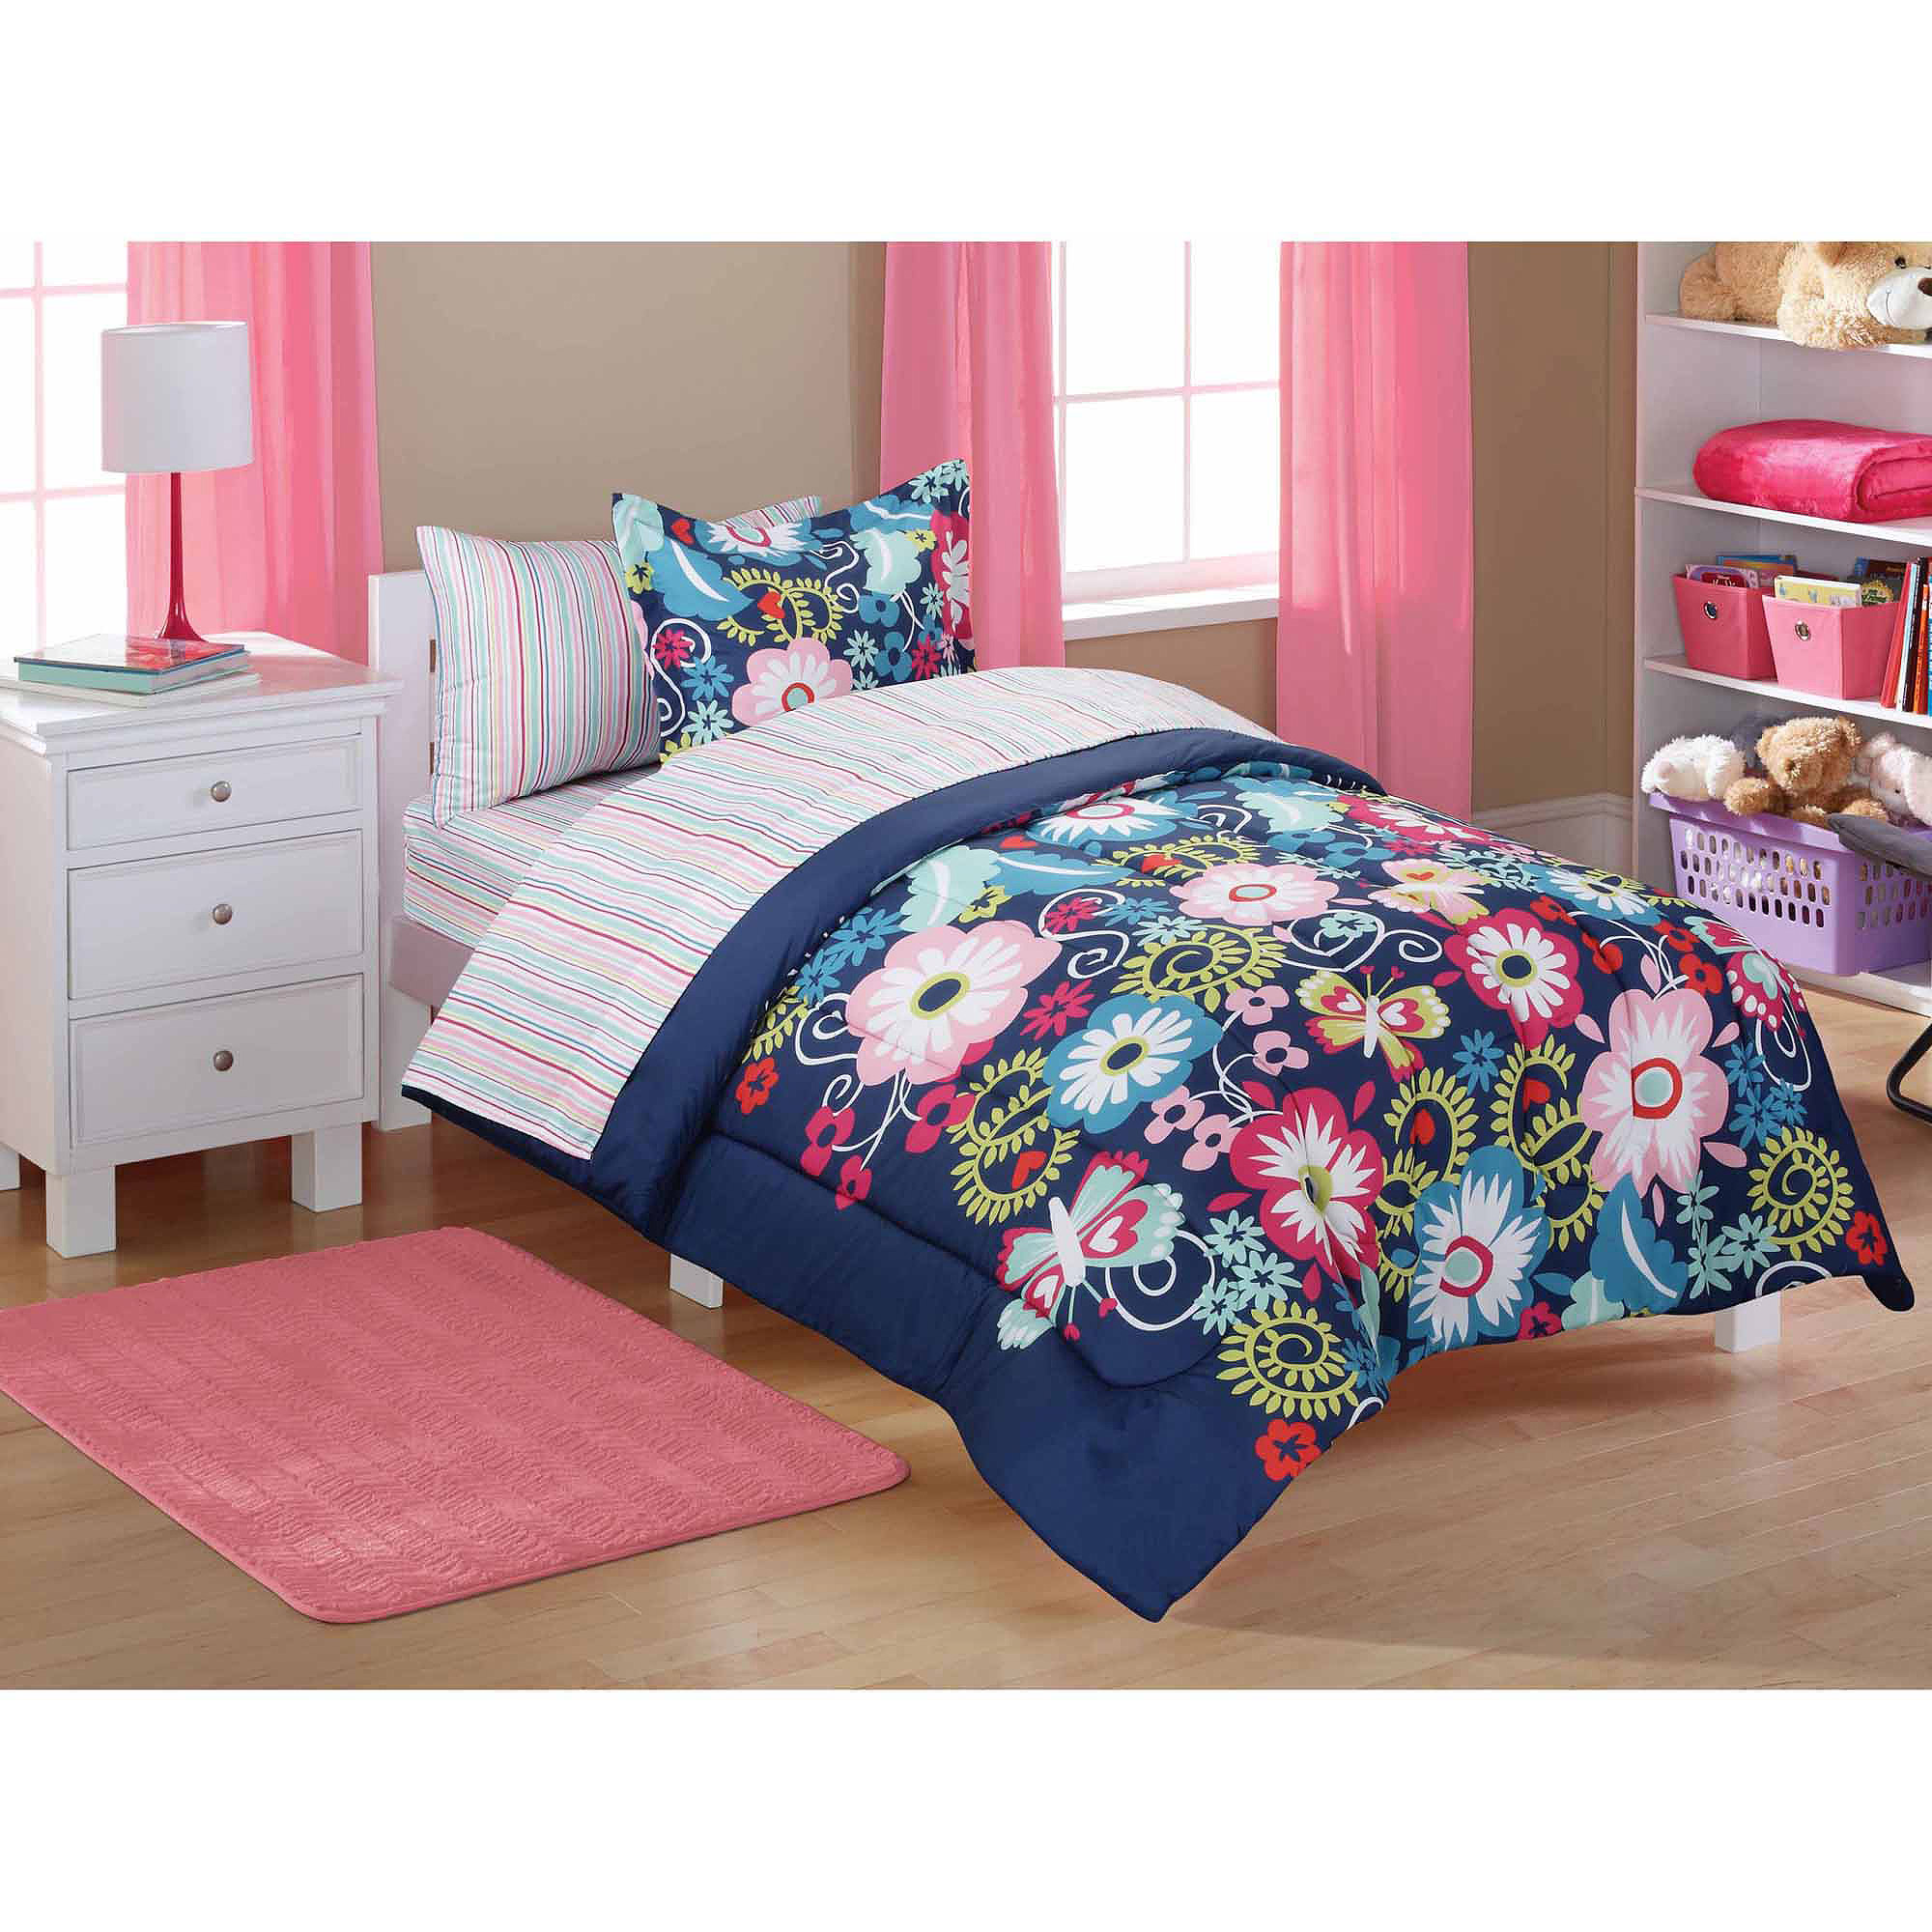 Mainstays Kids' Bed in a Bag, Navy Floral